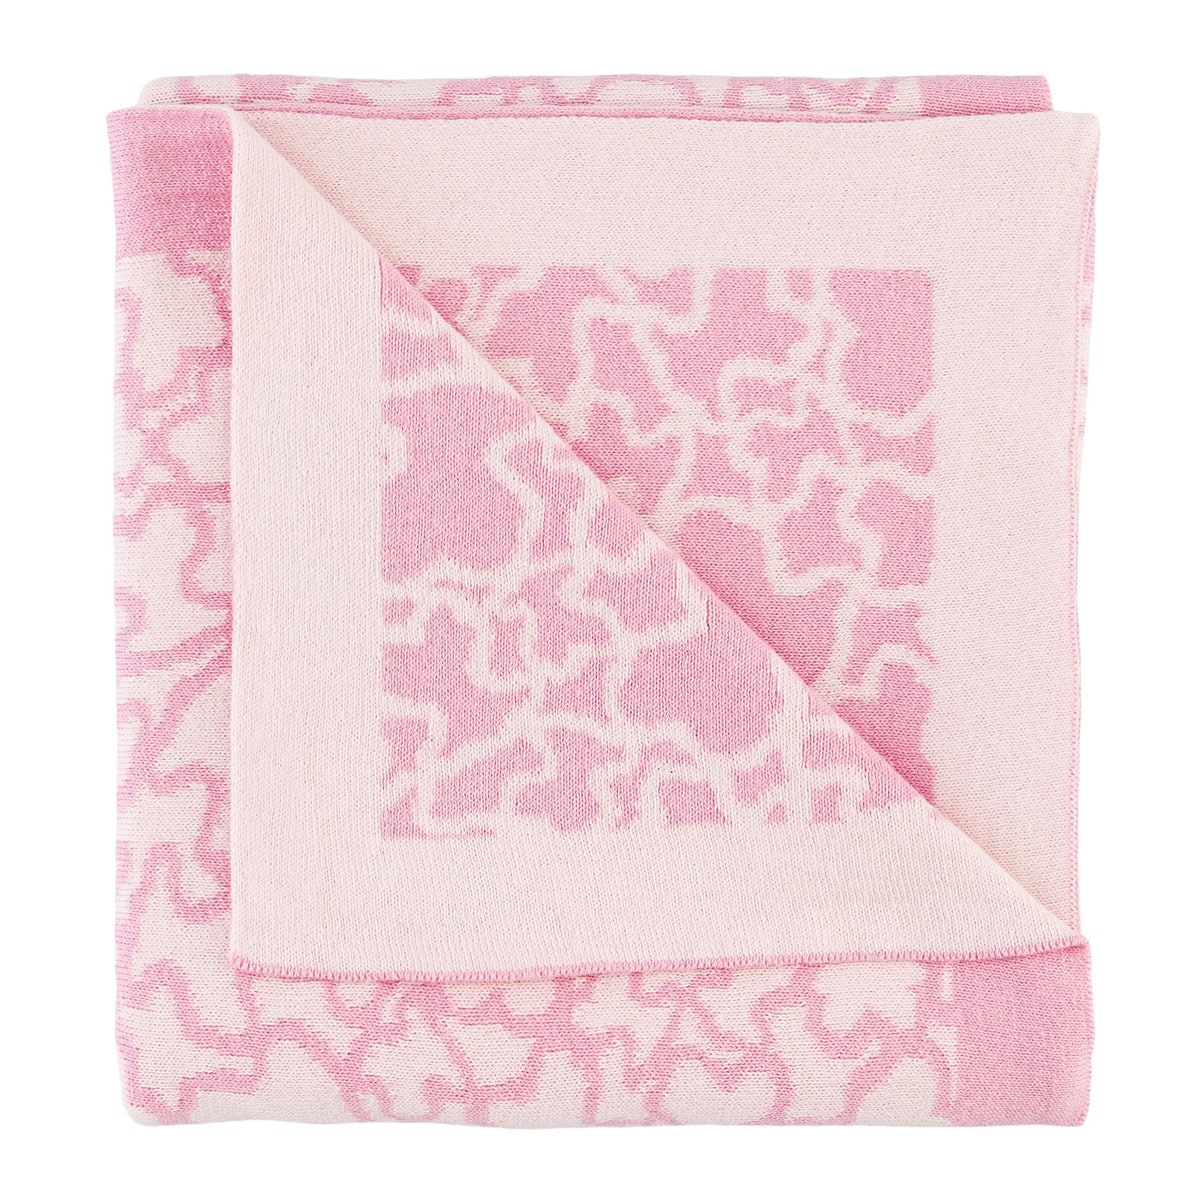 Kaos reversible blanket in pink